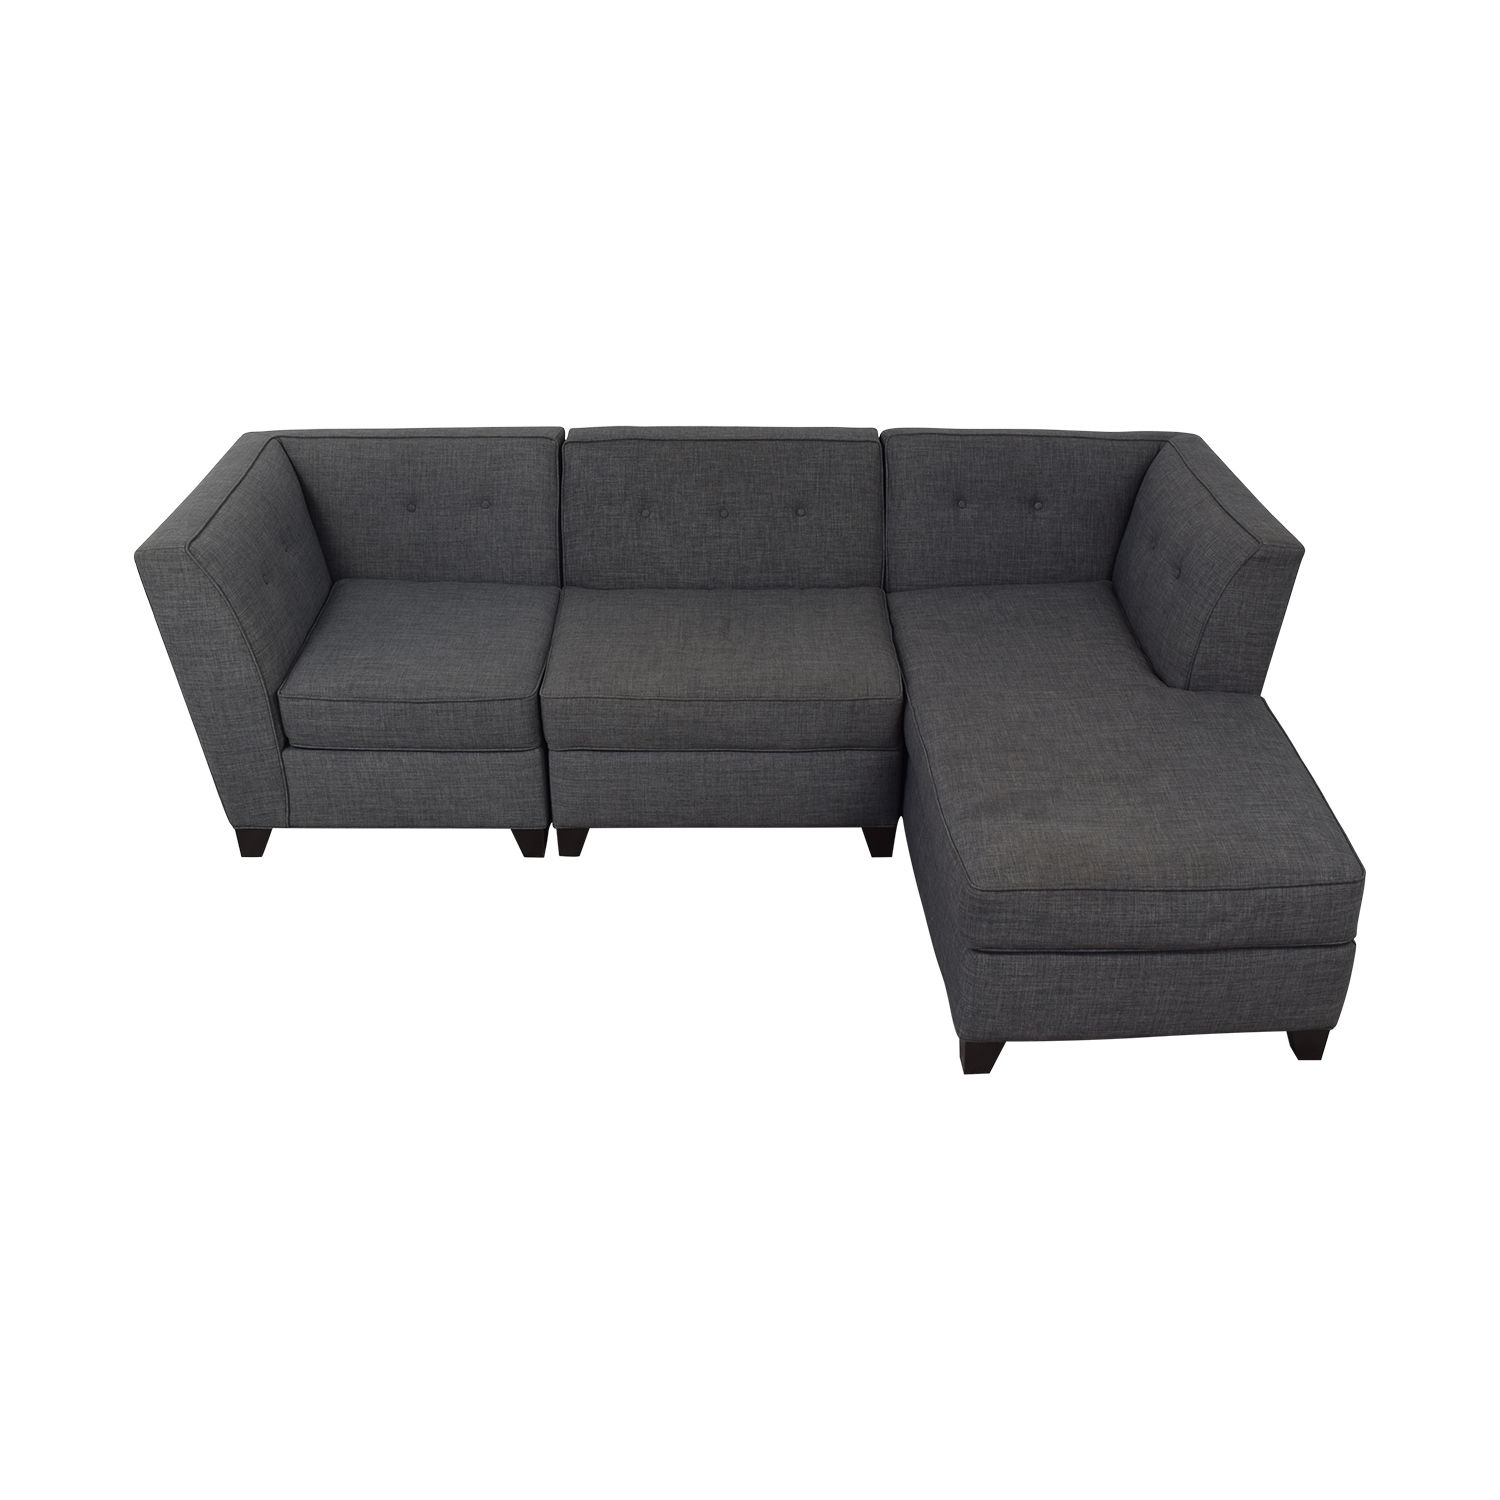 shop Macy's Macy's Three-Piece Chaise Sectional Sofa online